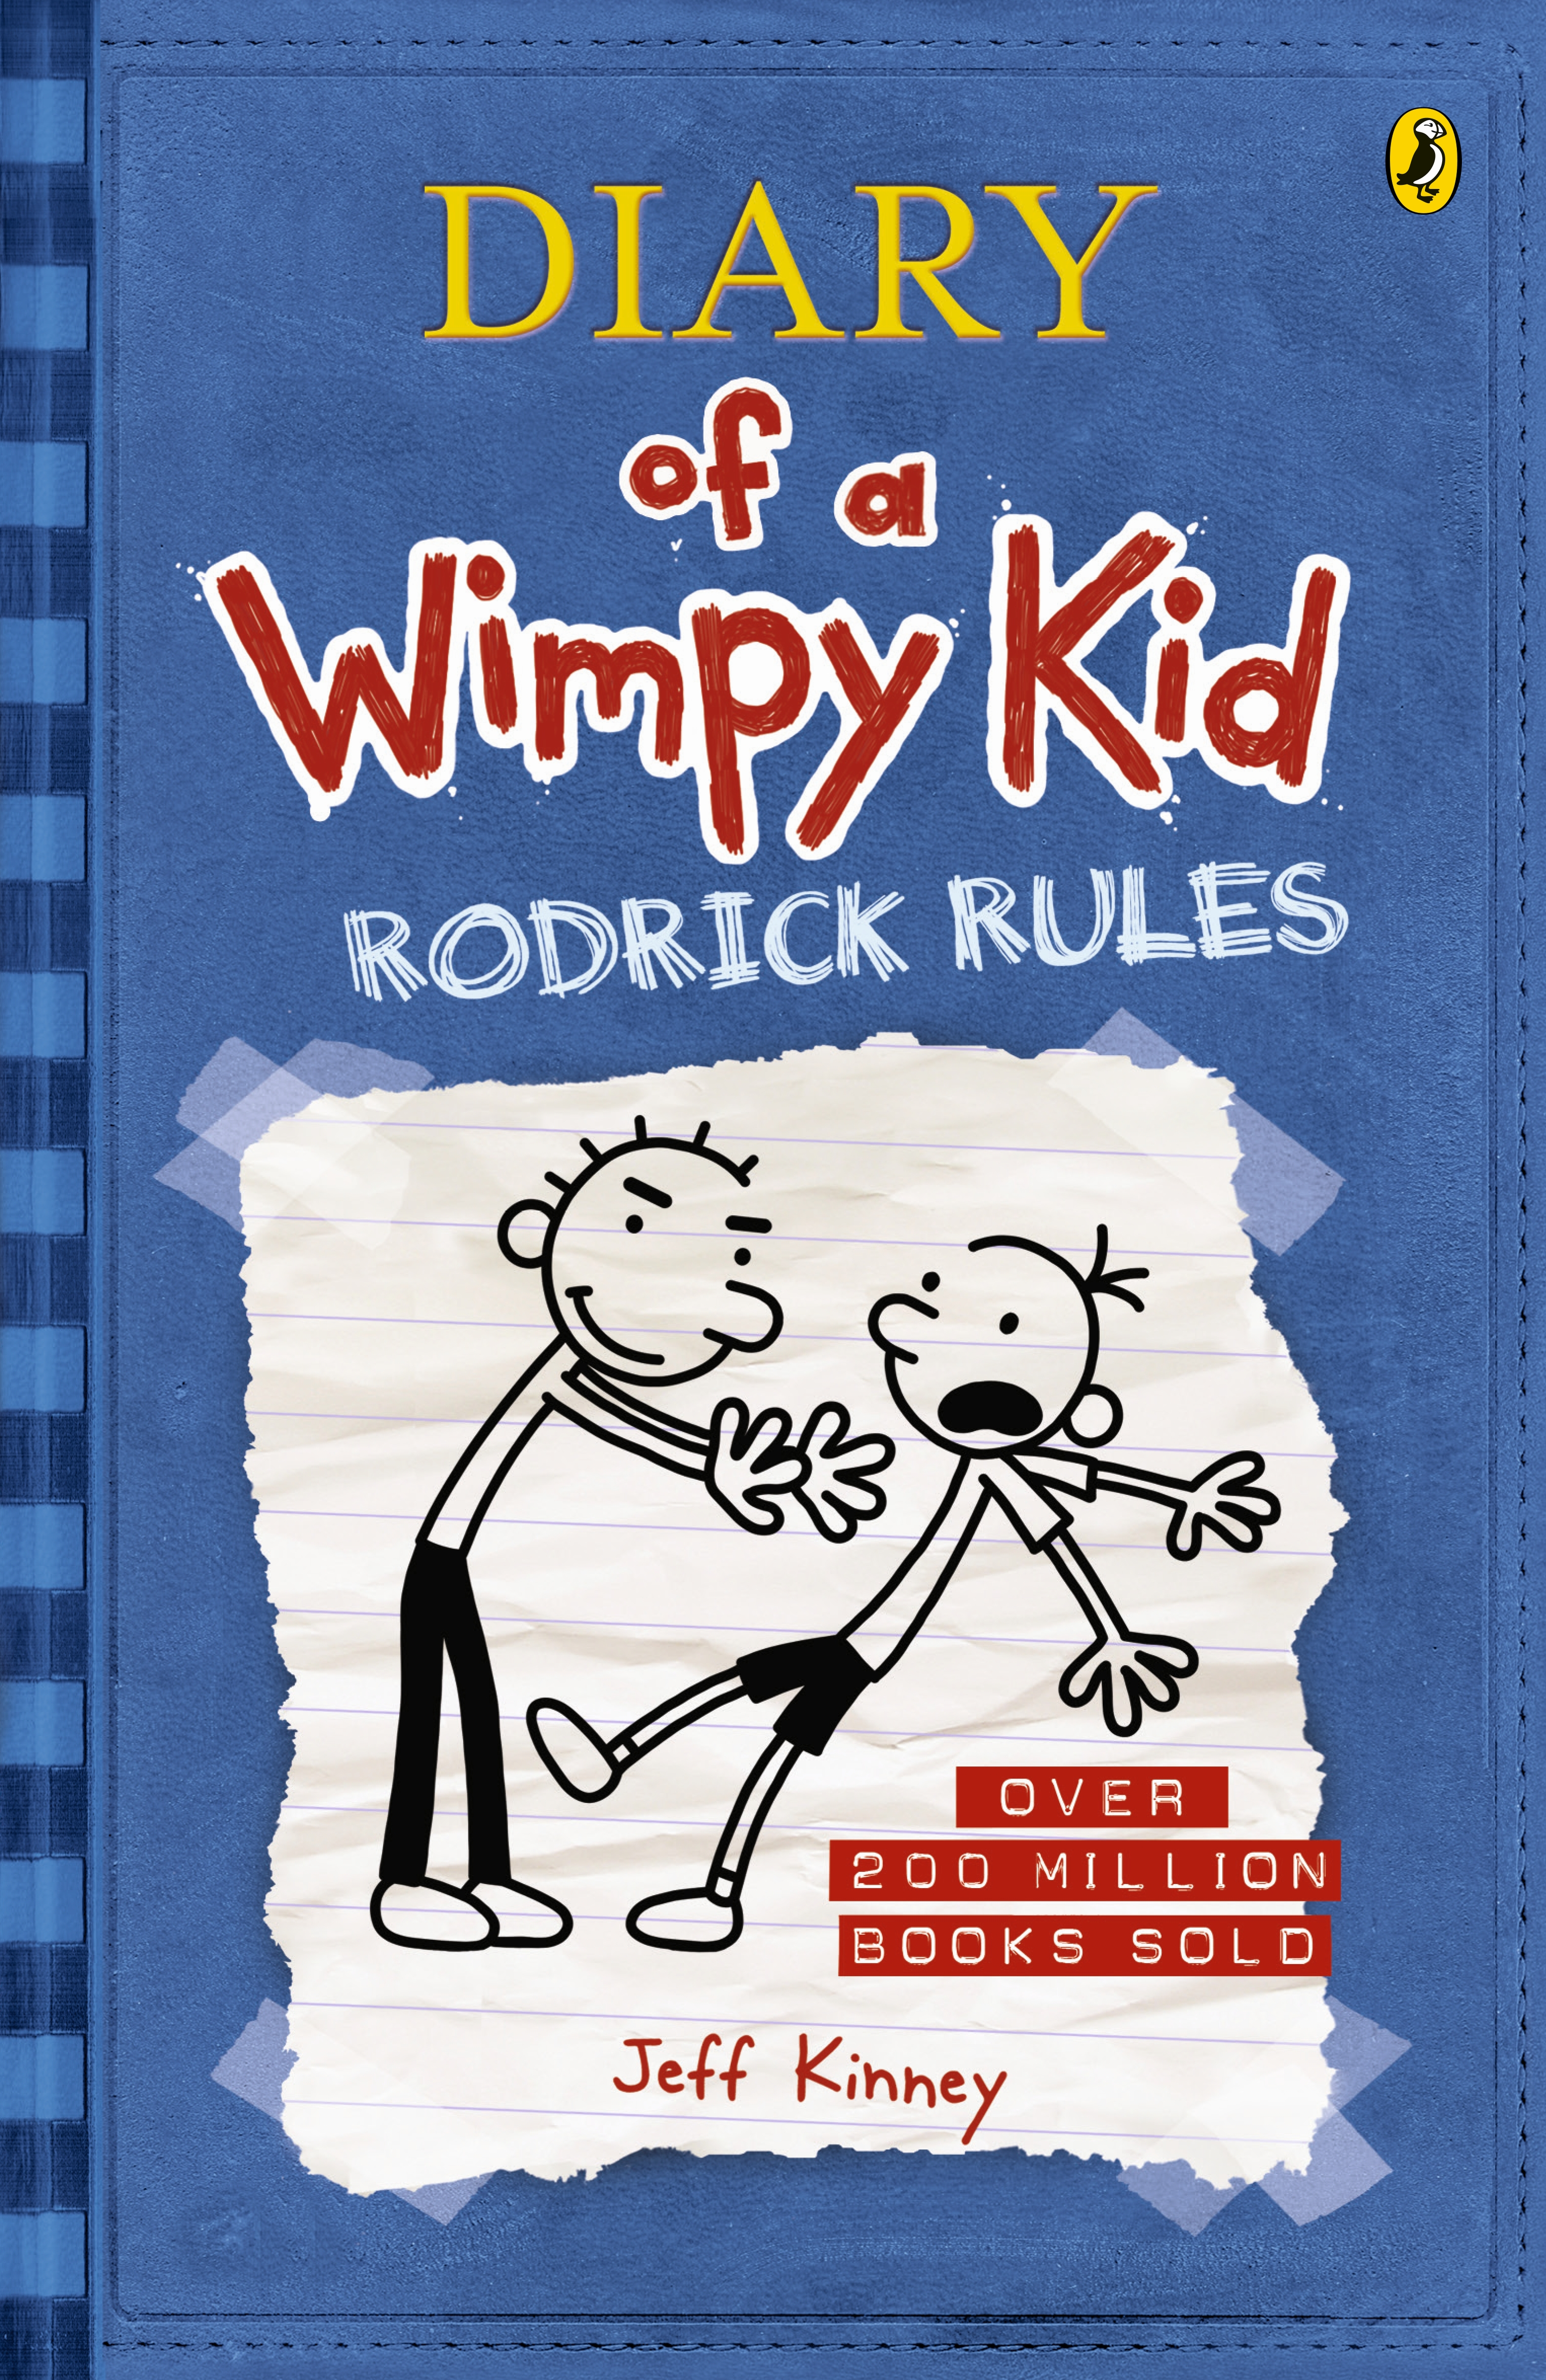 Rodrick rules diary of a wimpy kid bk2 by jeff kinney penguin hi res cover rodrick rules diary of a wimpy kid solutioingenieria Images